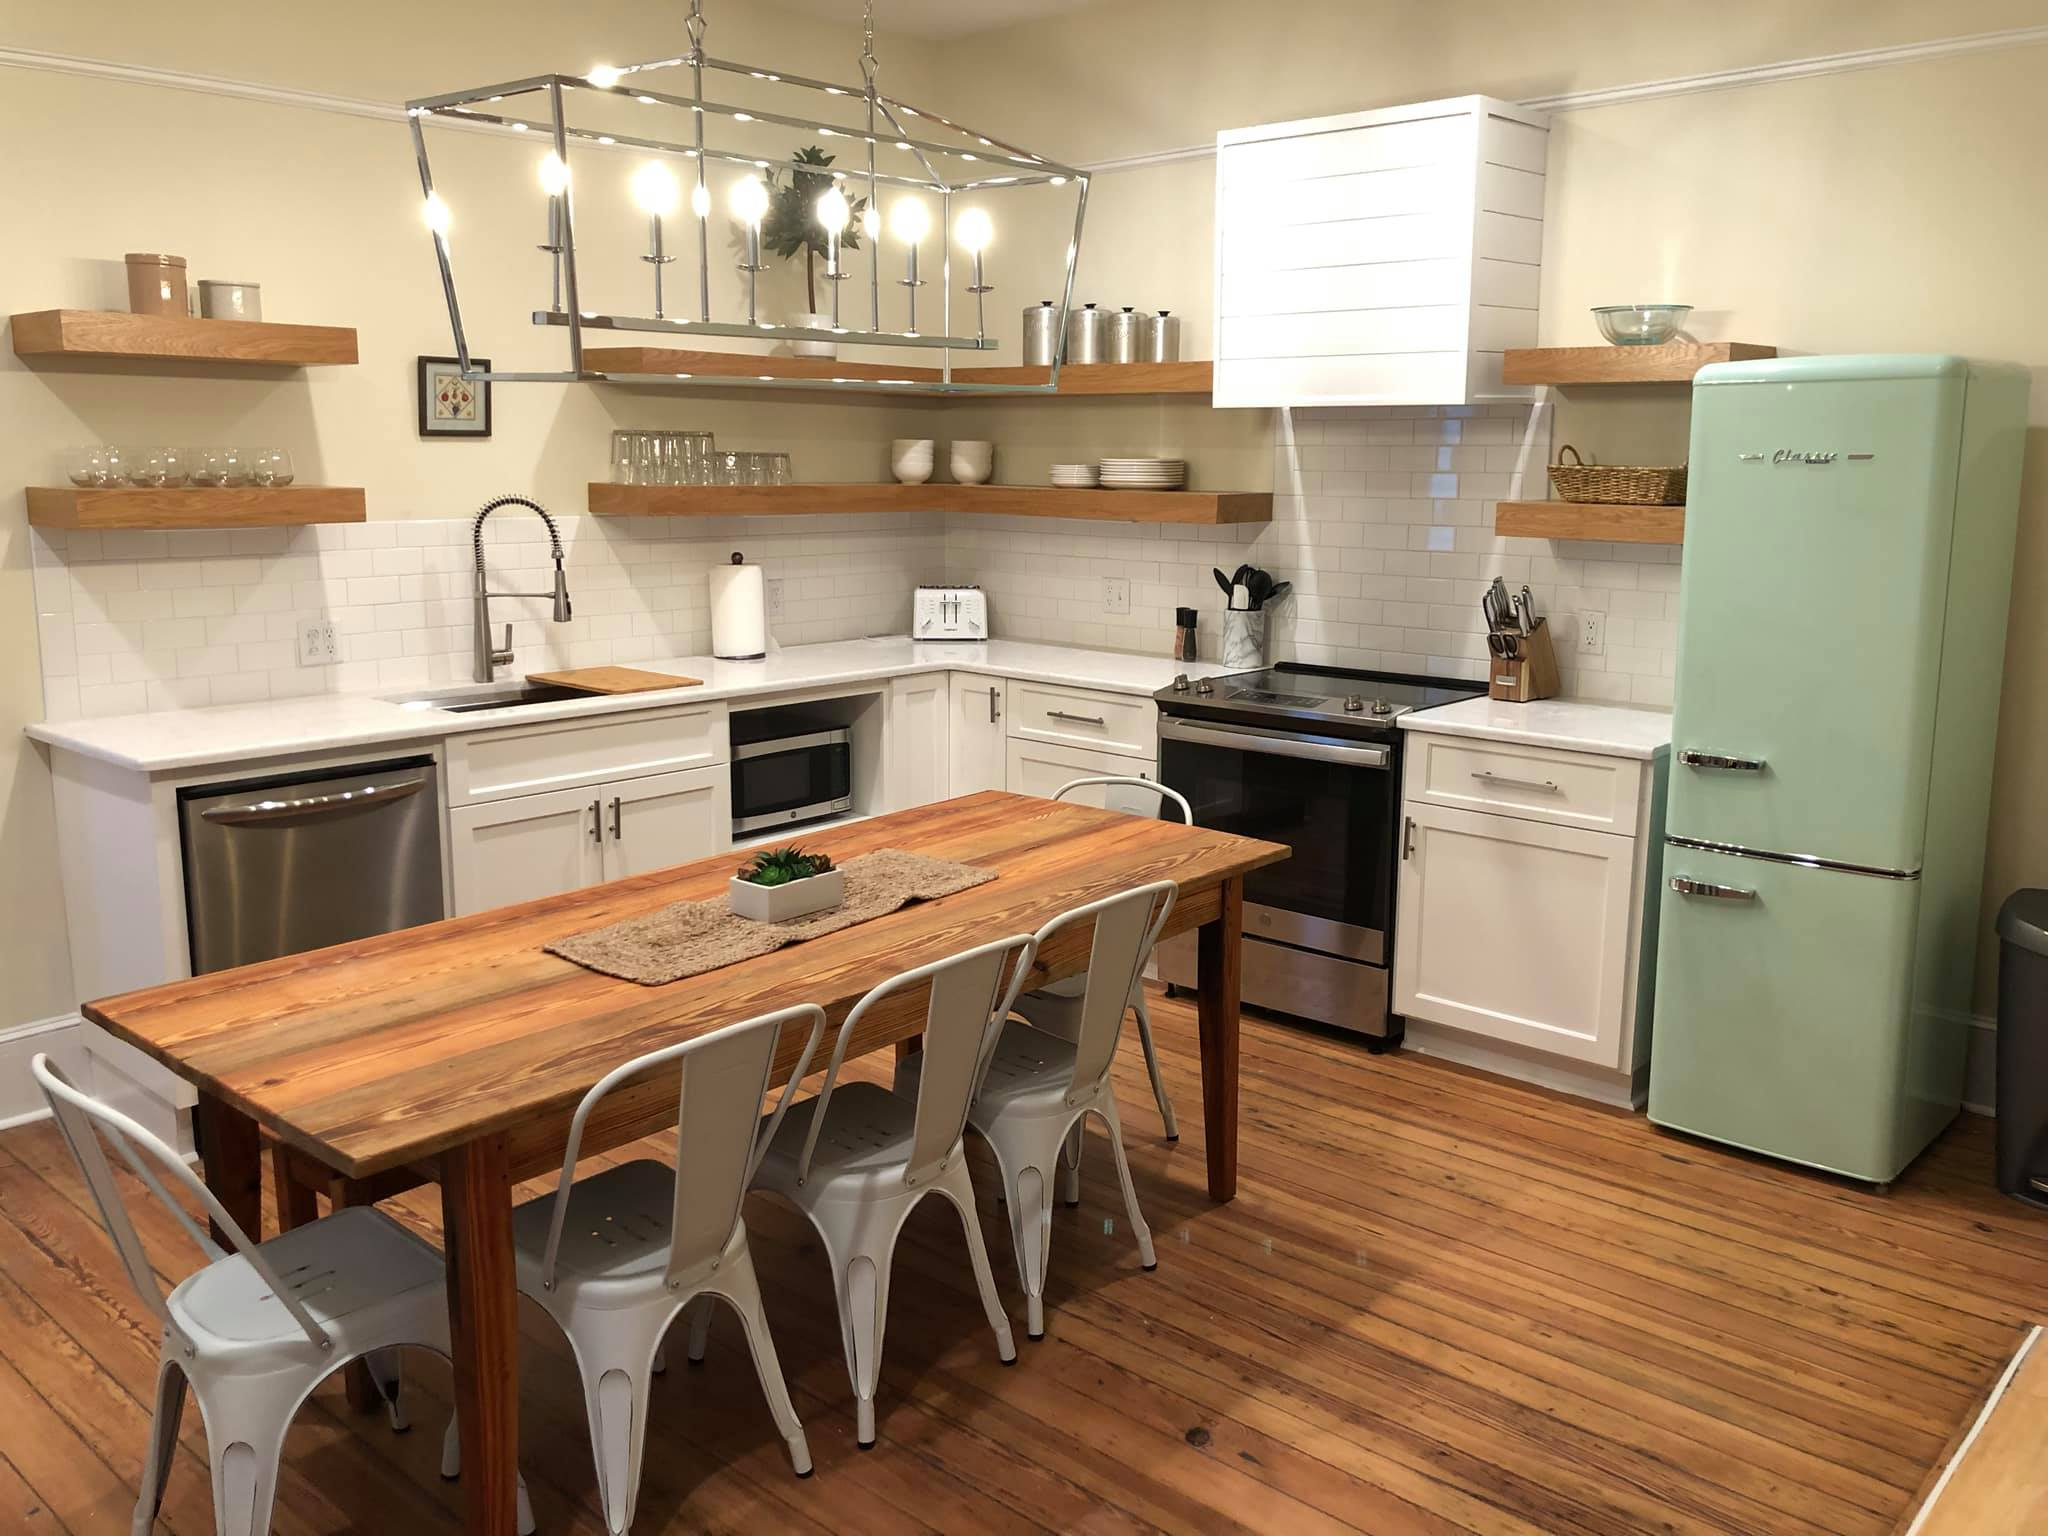 custom kitchen design built by New Haven Construction